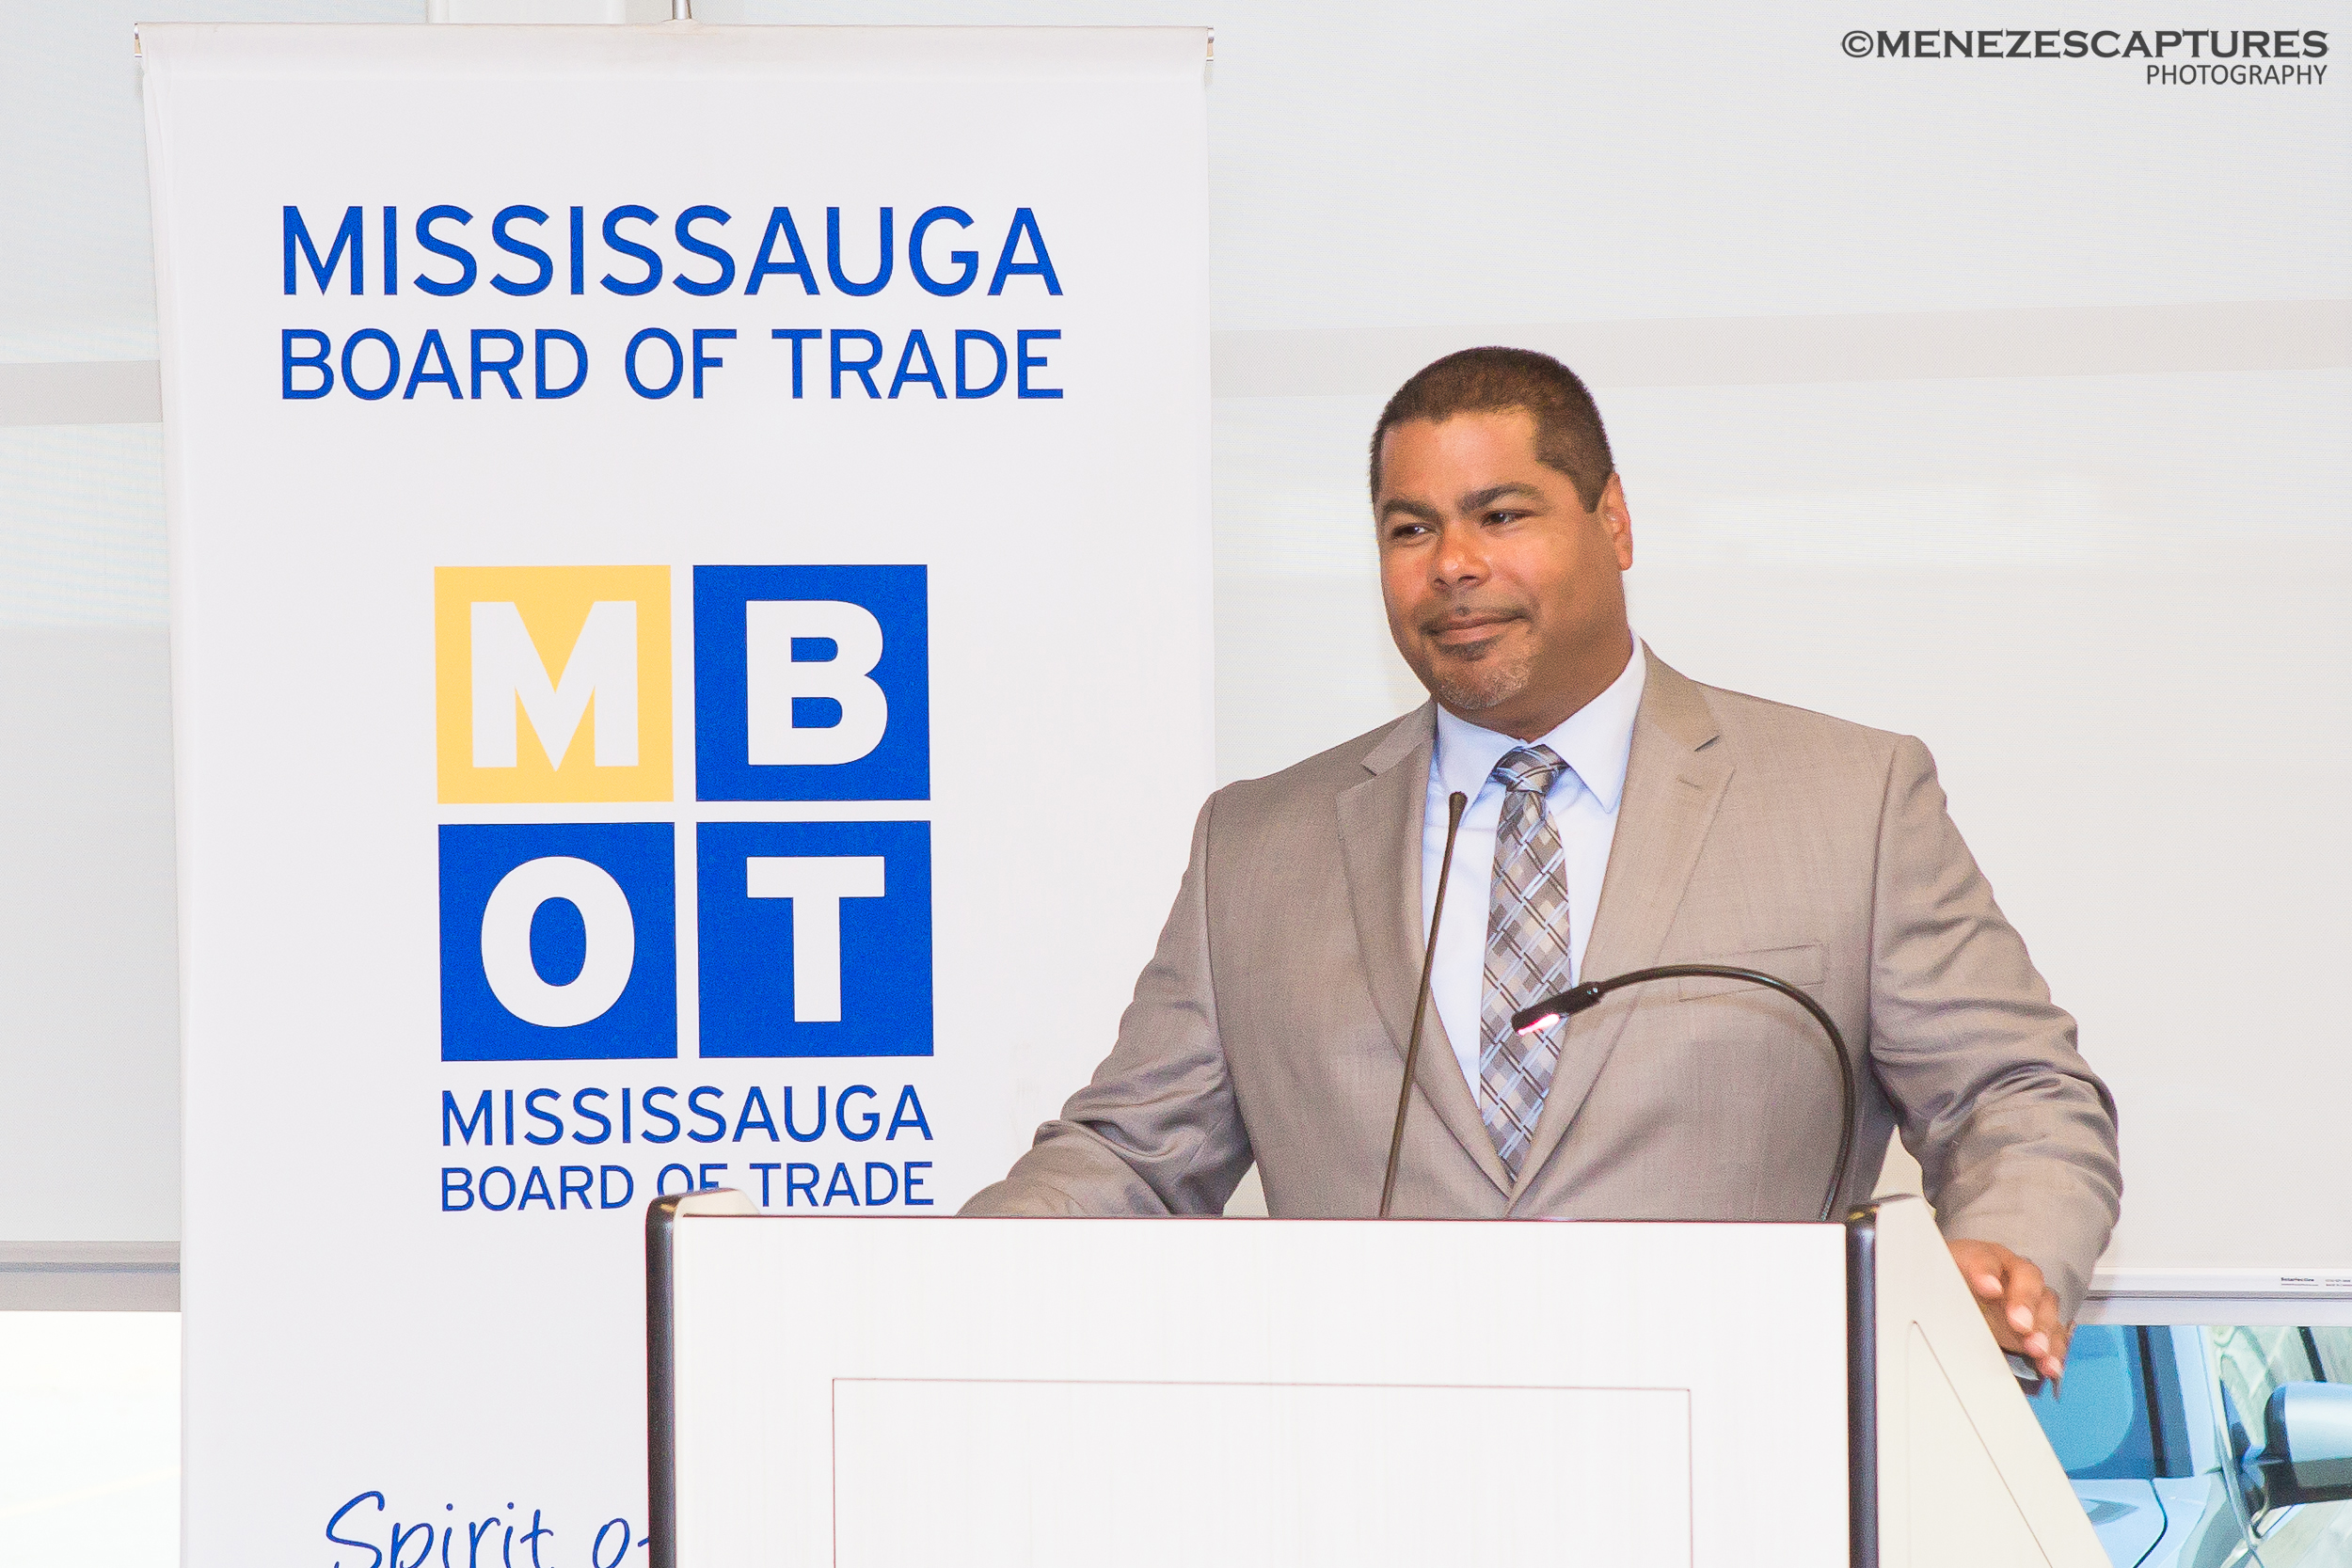 MBOT CEO addresses guests at an event (2015)